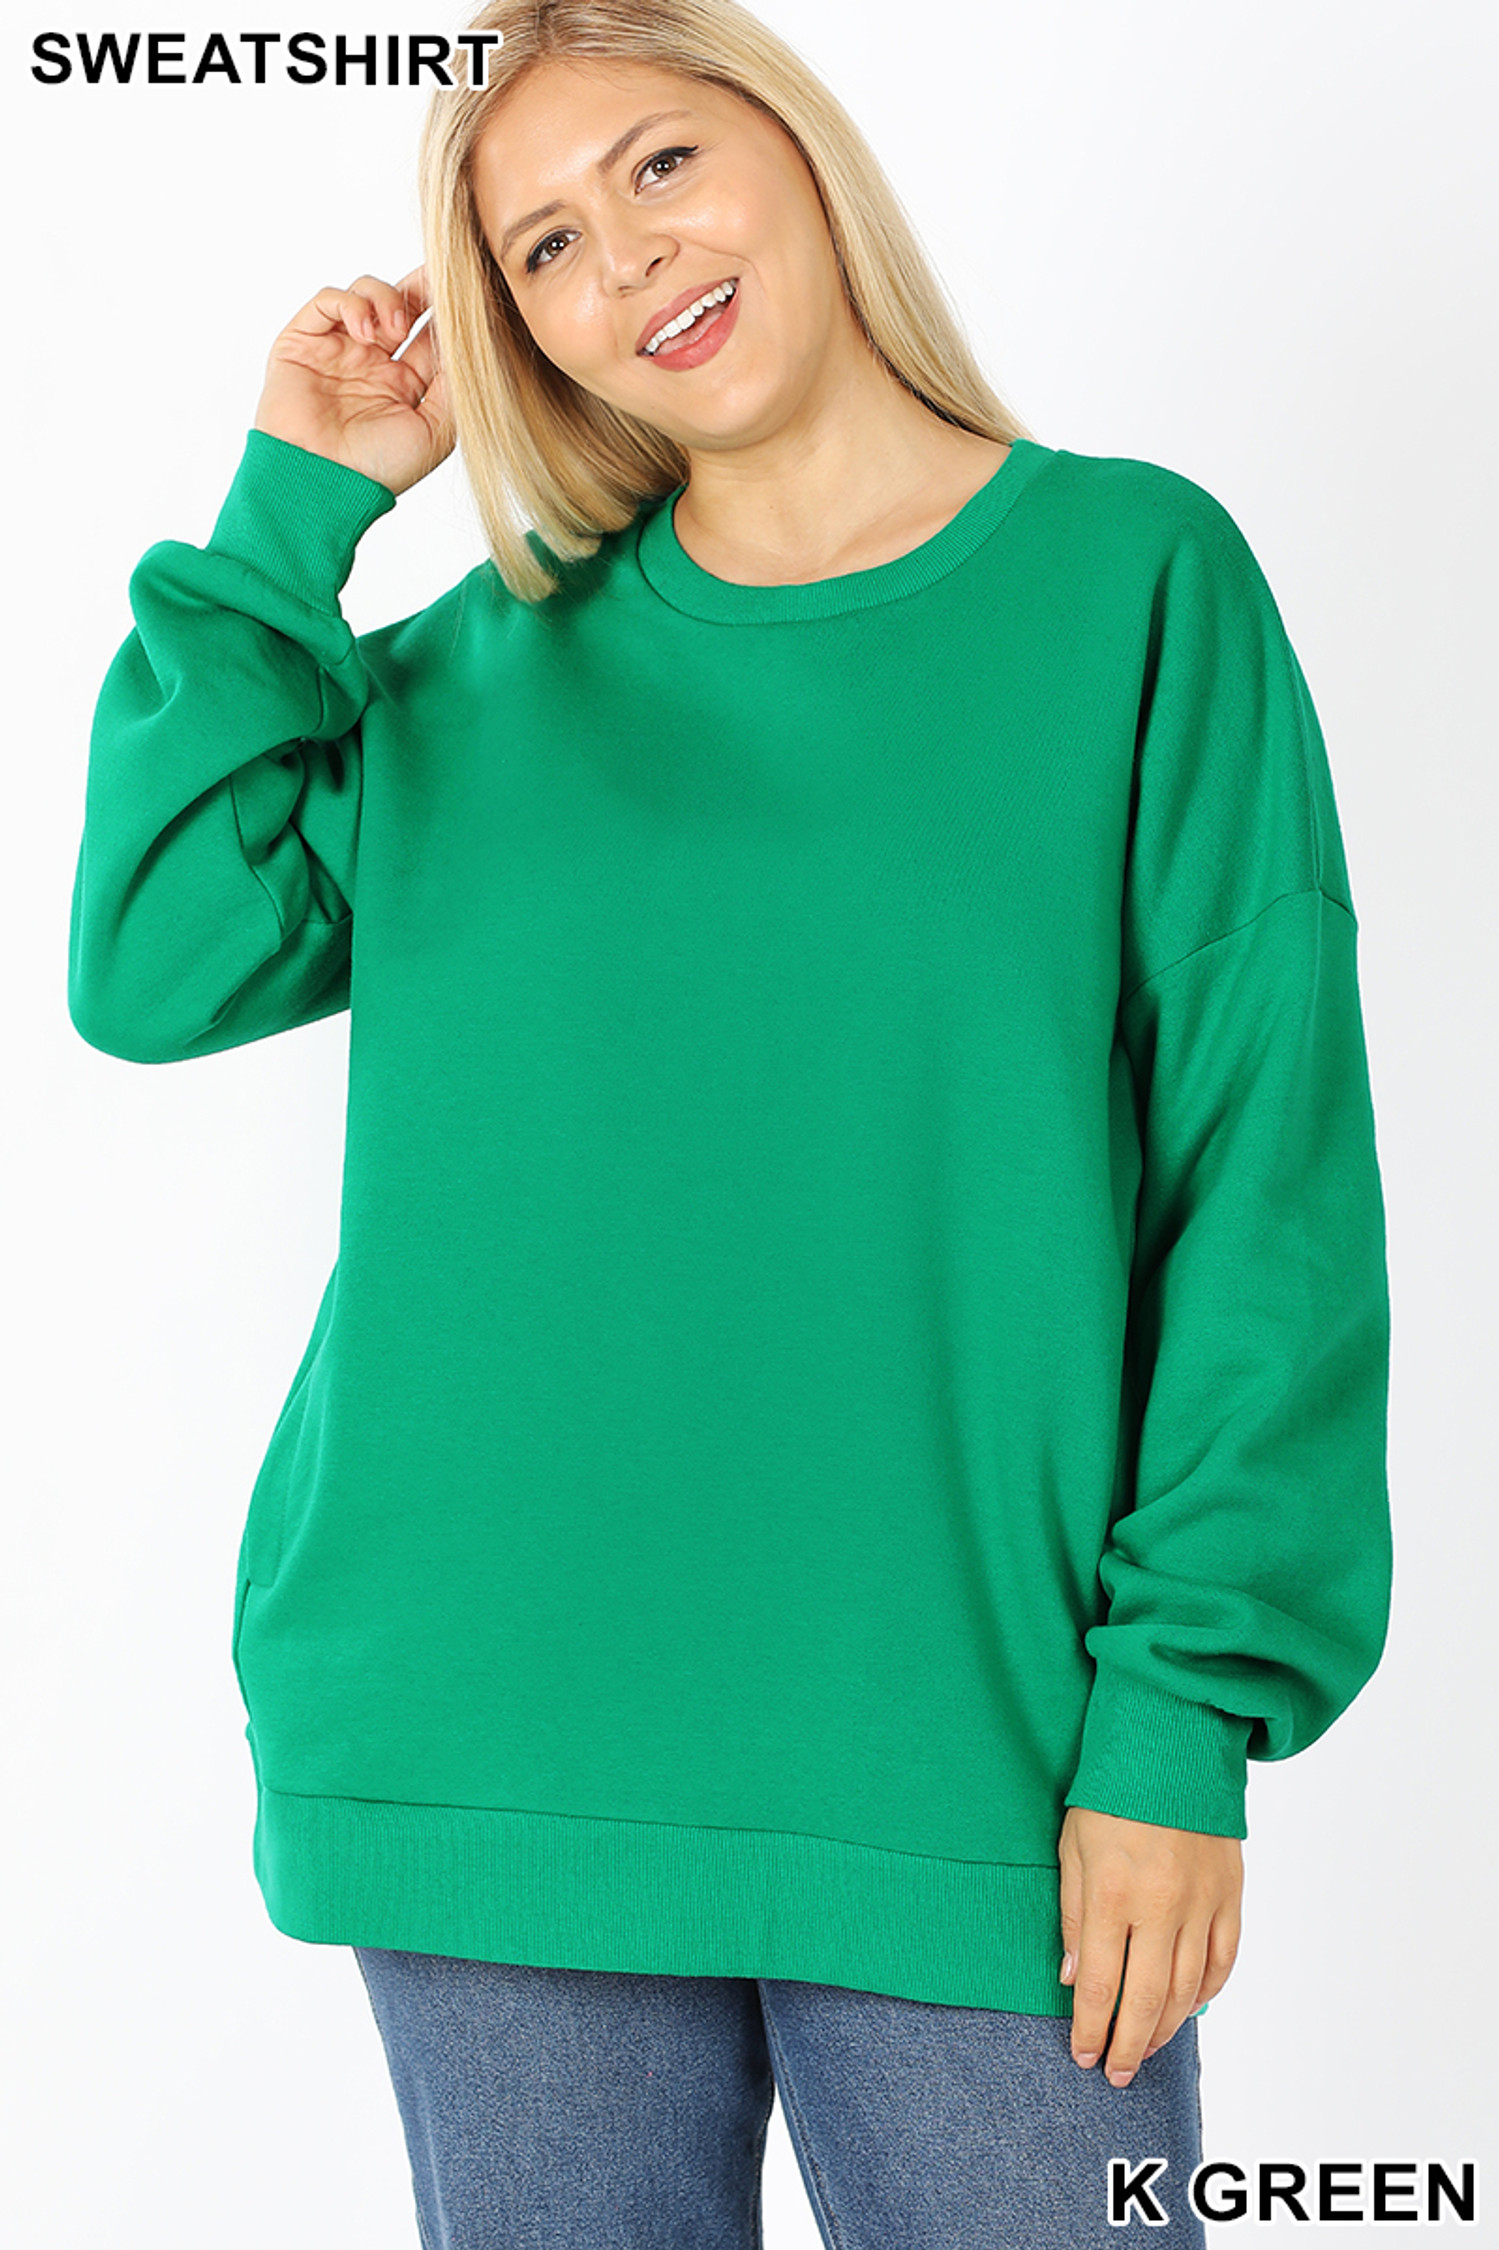 Front image of Kelly Green Cotton Round Crew Neck Plus Size Sweatshirt with Side Pockets